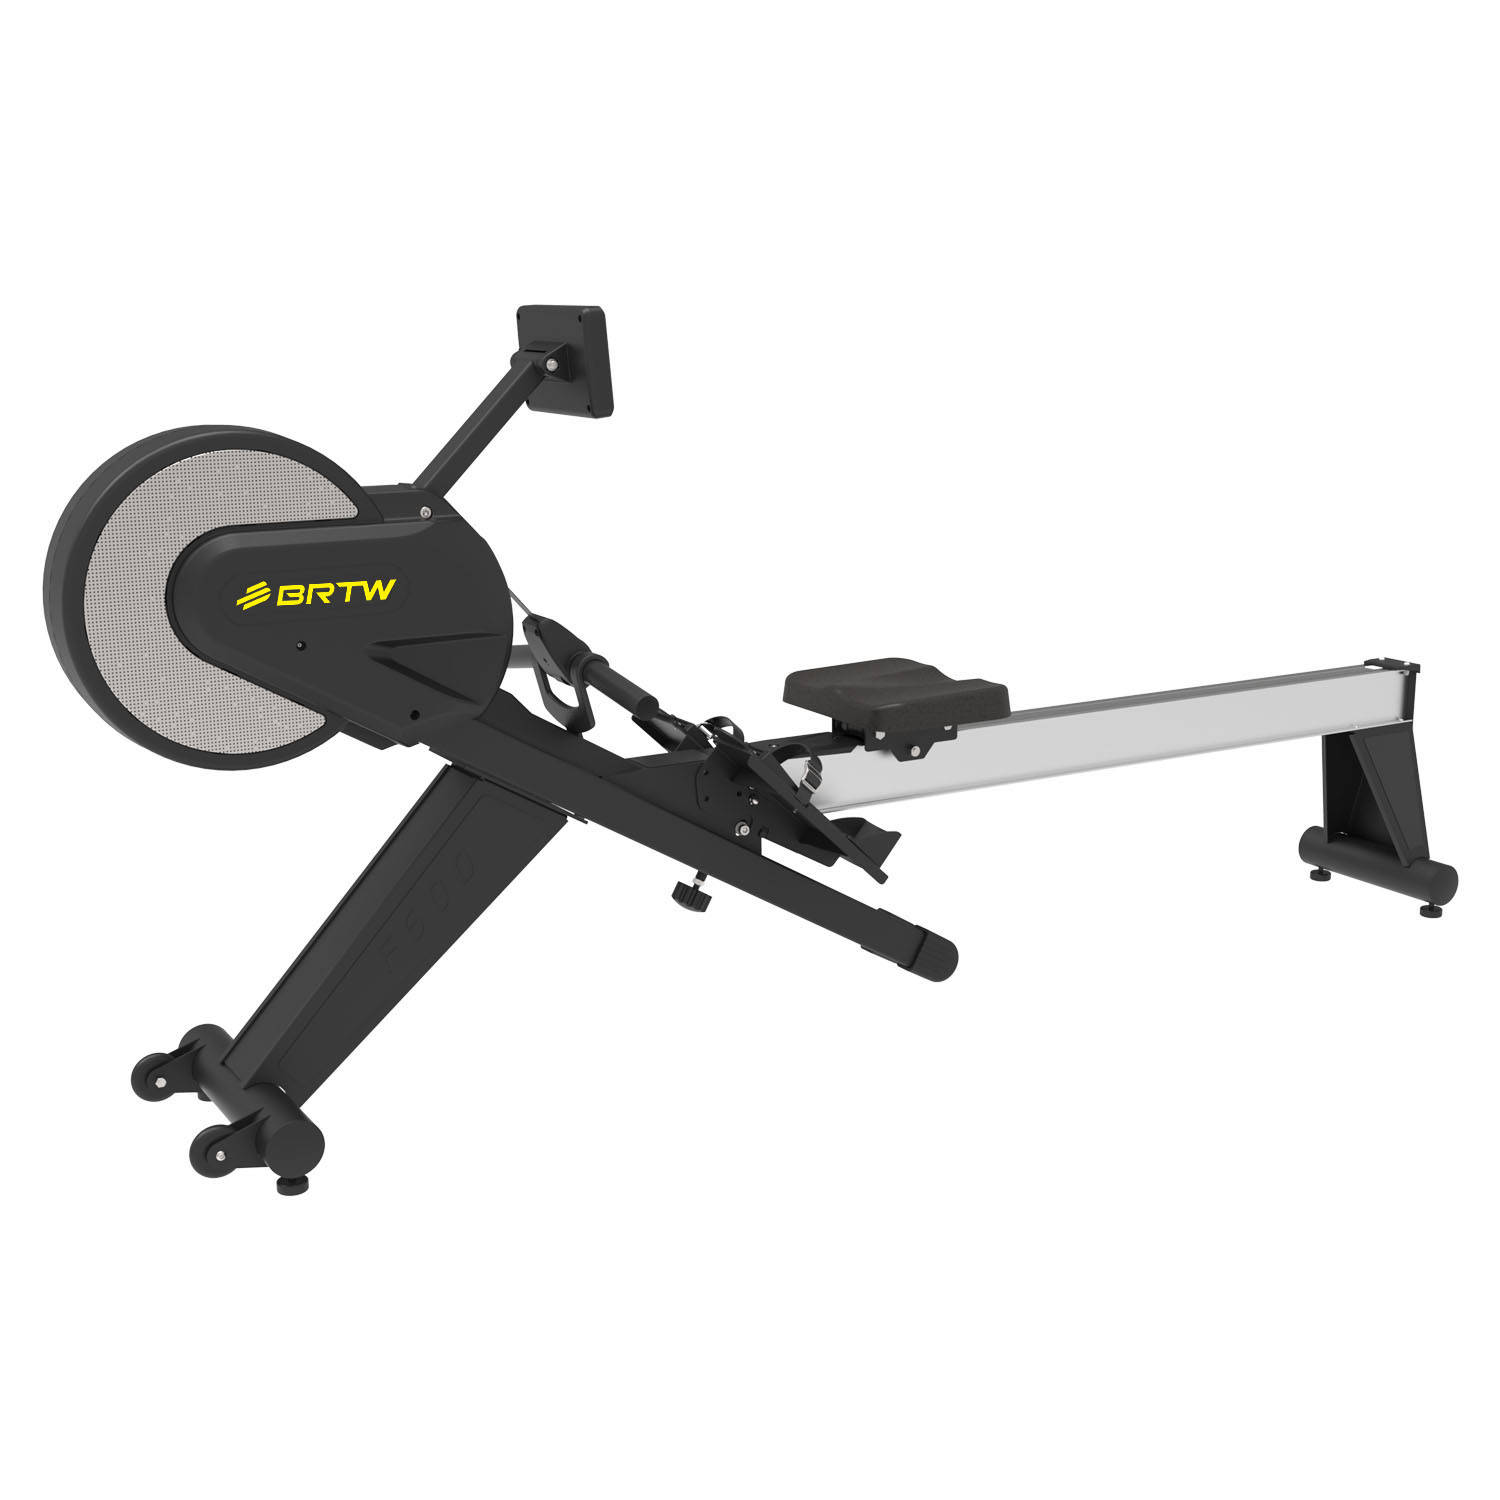 Commercial Gym Air Rowing With 16 Resistance Levels F600